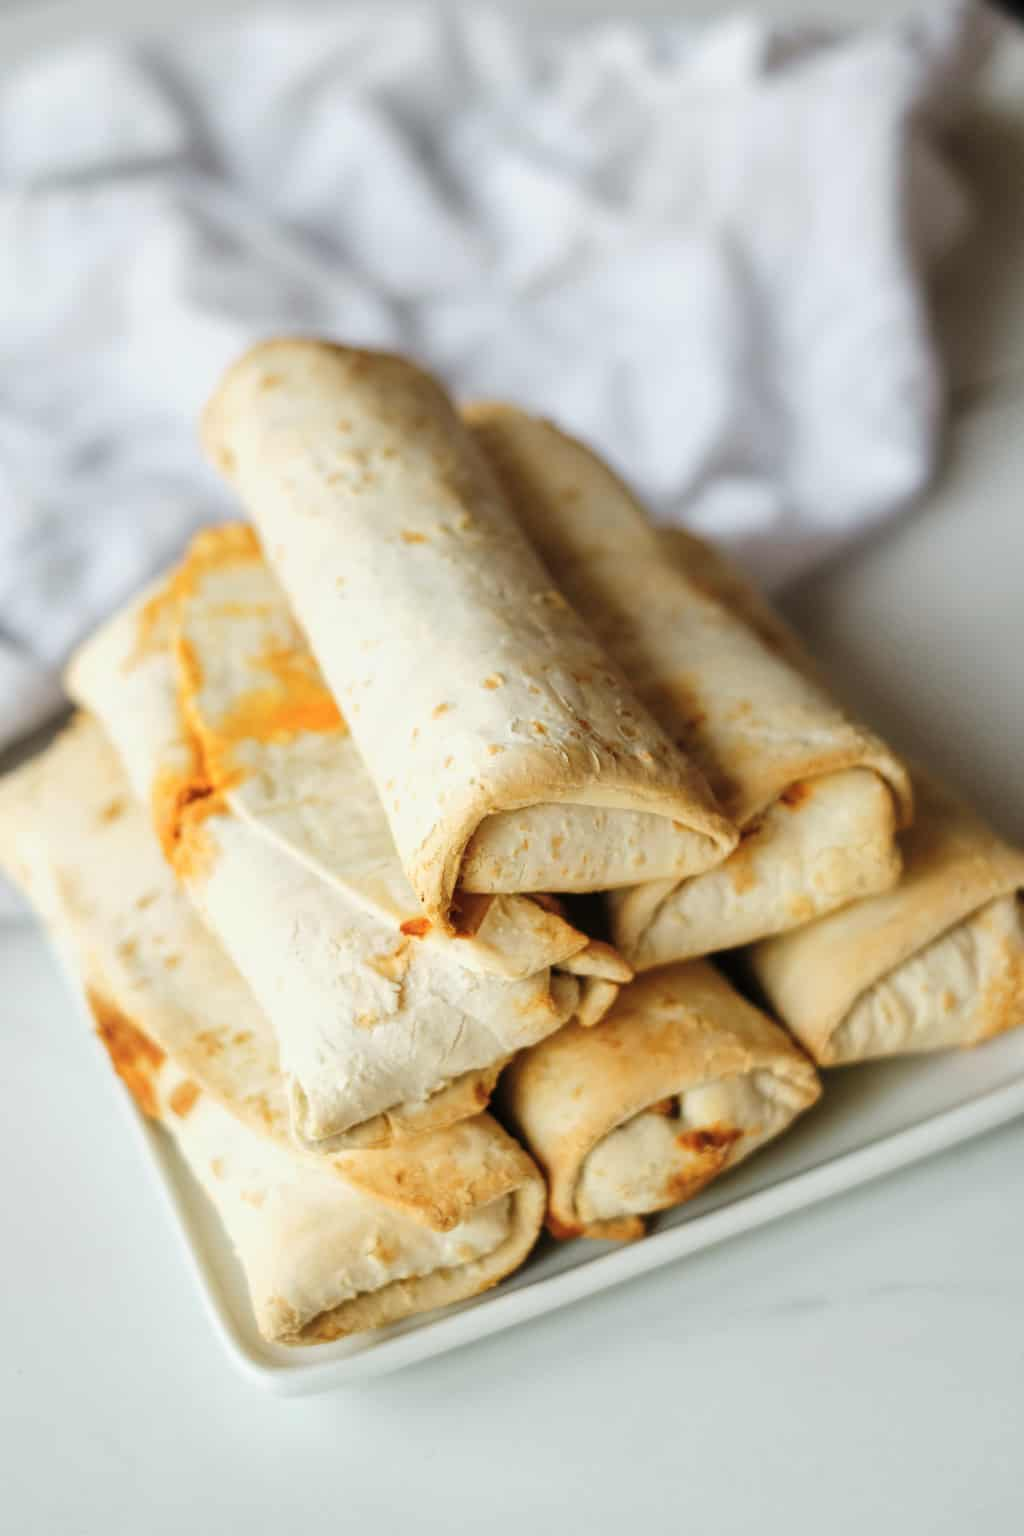 cooked frozen burrito in air fryer stacked on a white plate